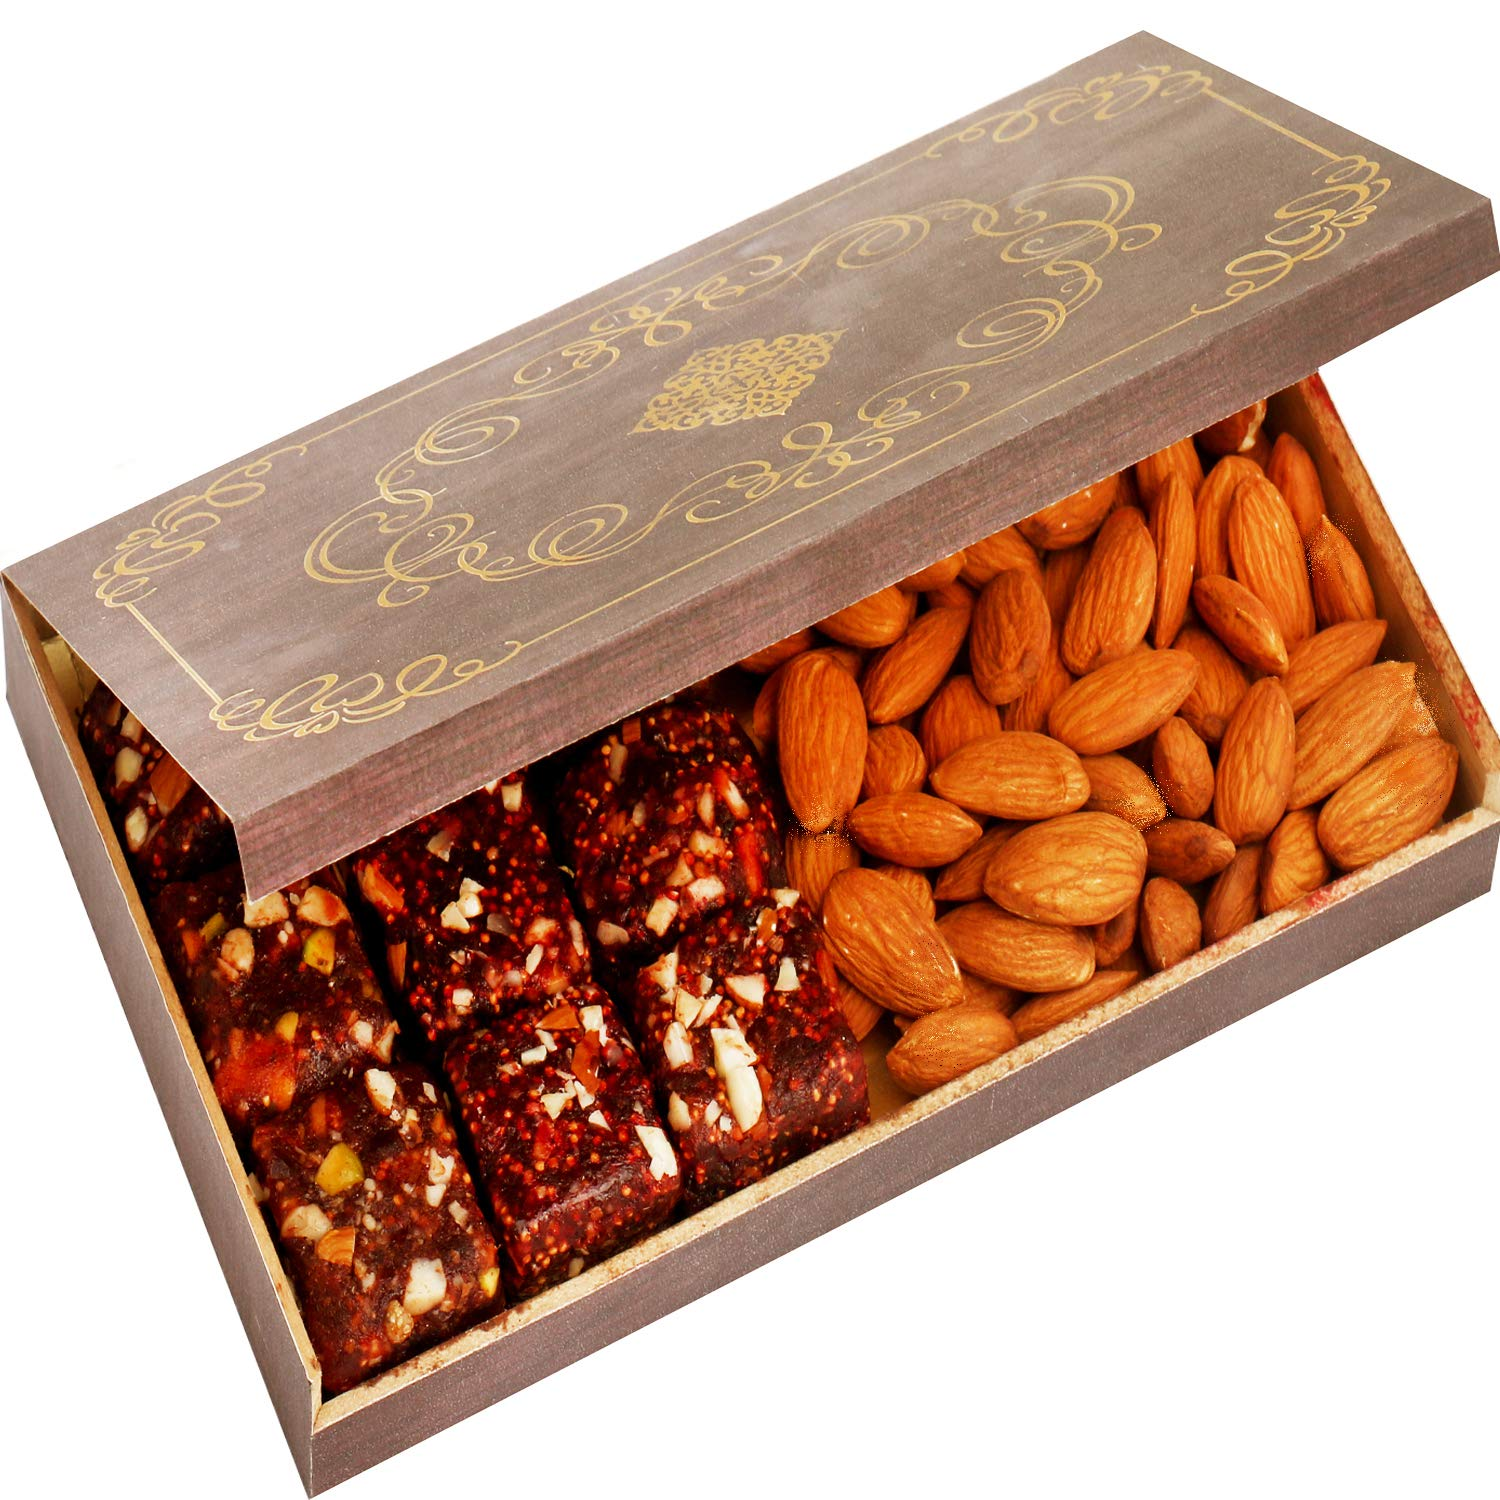 Ghasitaram Gifts Diwali Gifts Healthy Hampers - Wooden 9 Pcs Sugarfree Dates and Figs Bites and Almonds Box